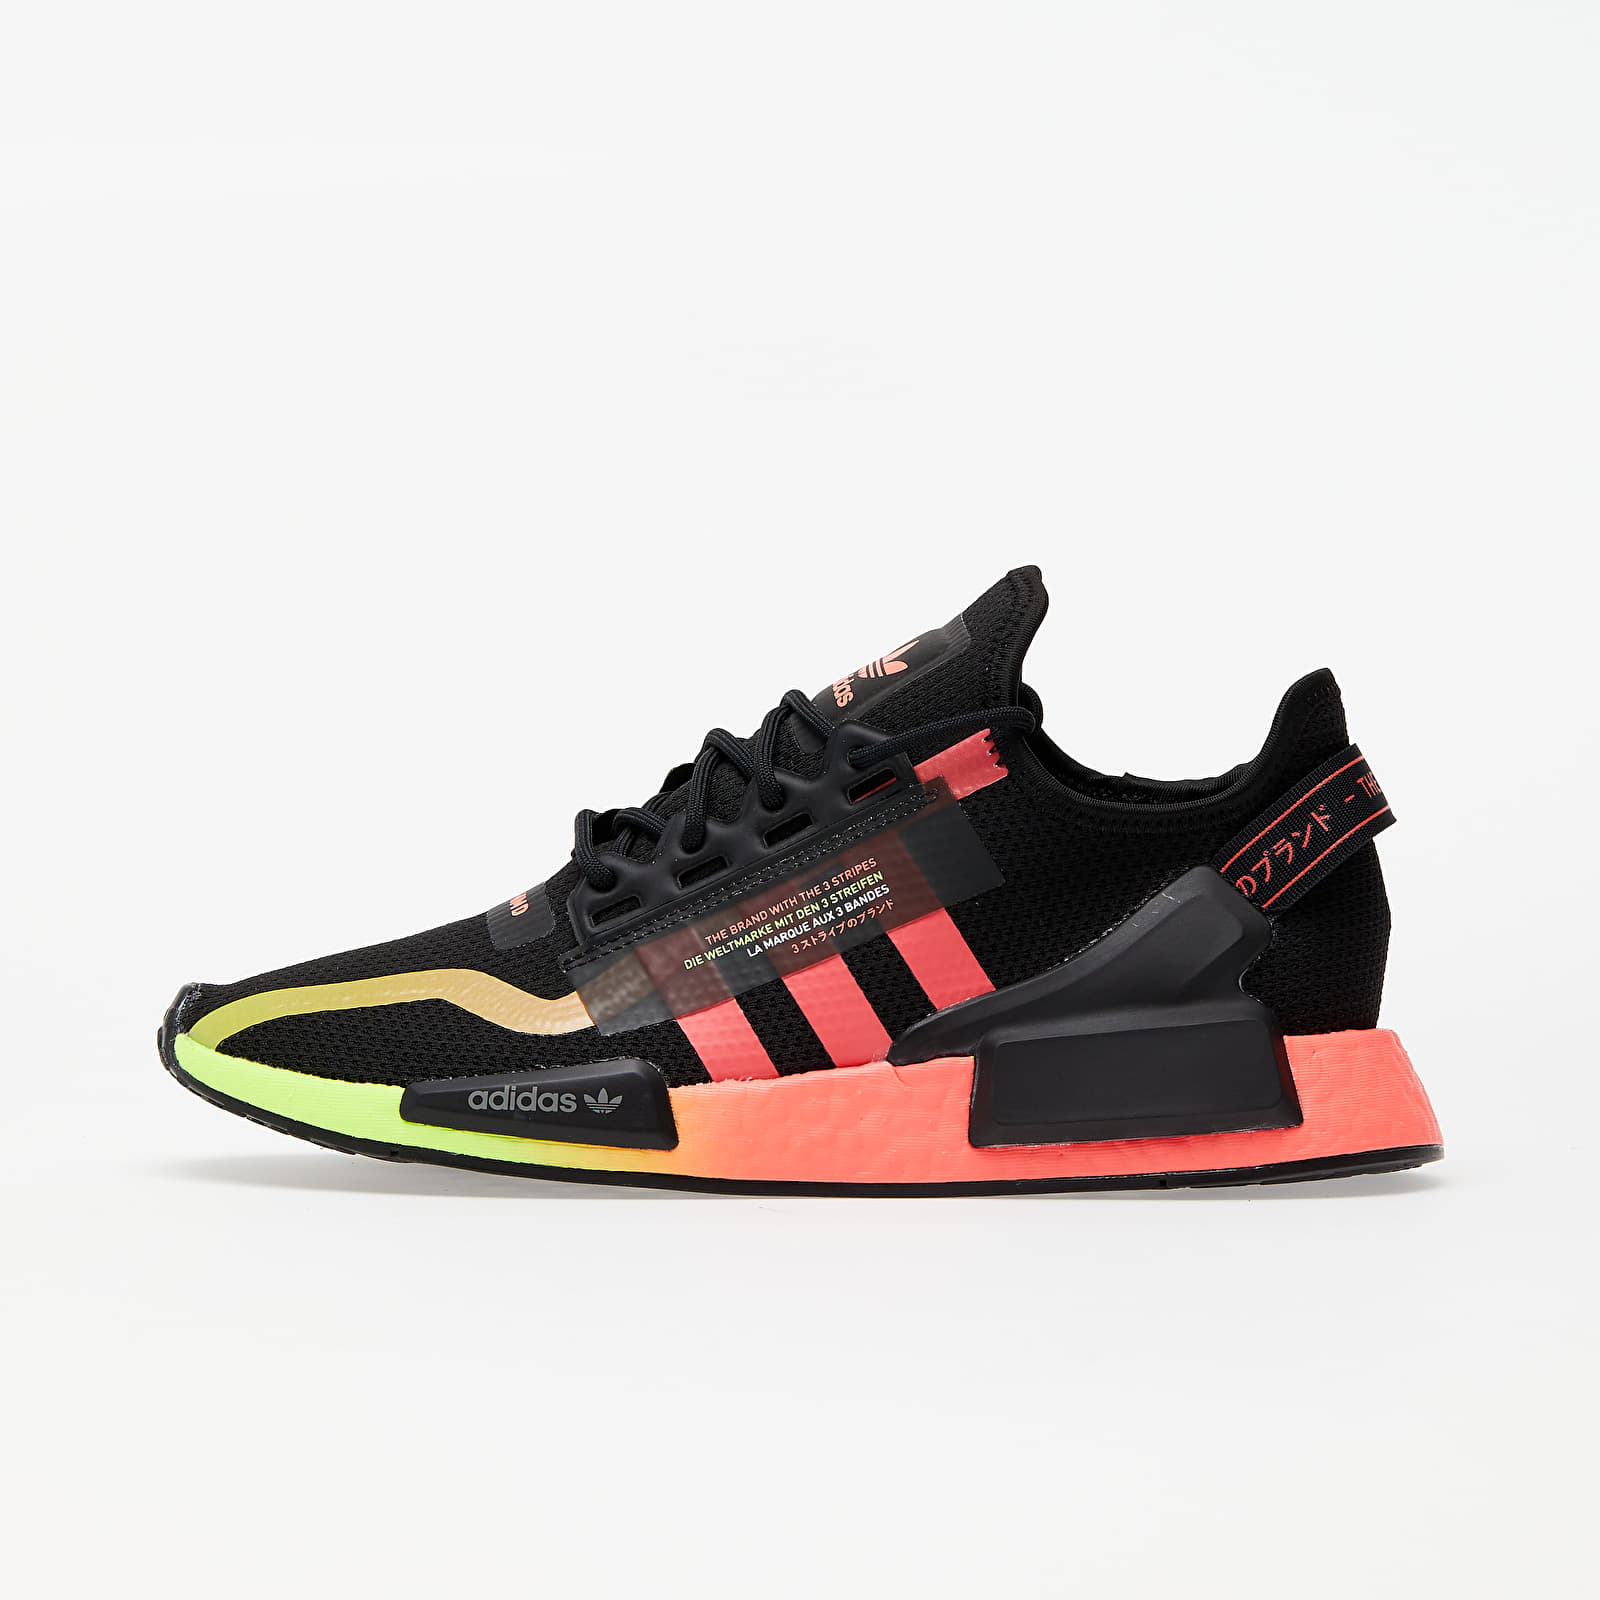 Chaussures et baskets homme adidas NMD_R1.V2 Core Black/ Signature Pink/ Signature Green